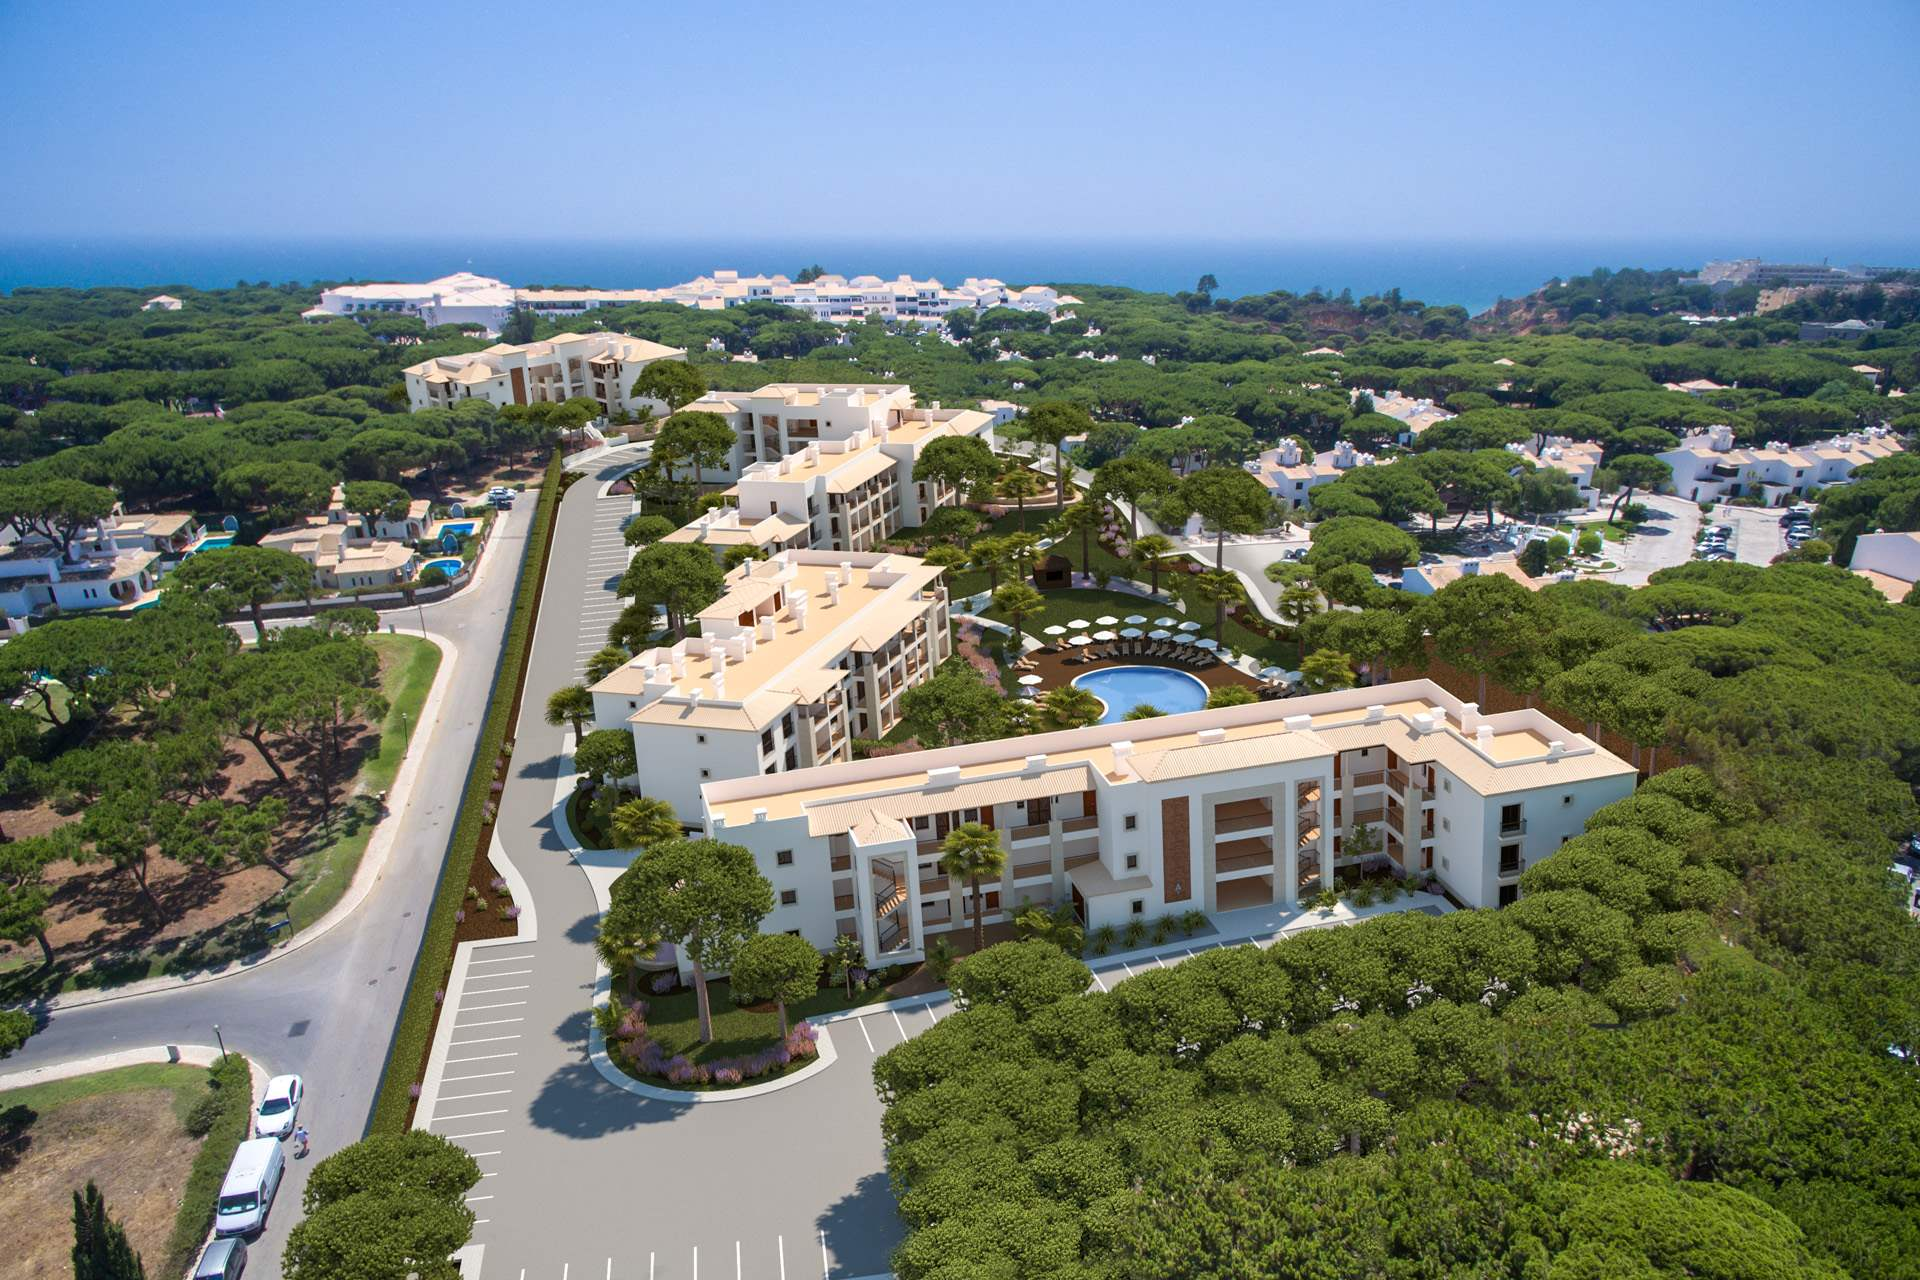 Pine Cliffs Gardens, Two Bedroom Suite, S/C Basis, 2 bedroom apartment in Pine Cliffs Resort, Algarve Photo #10